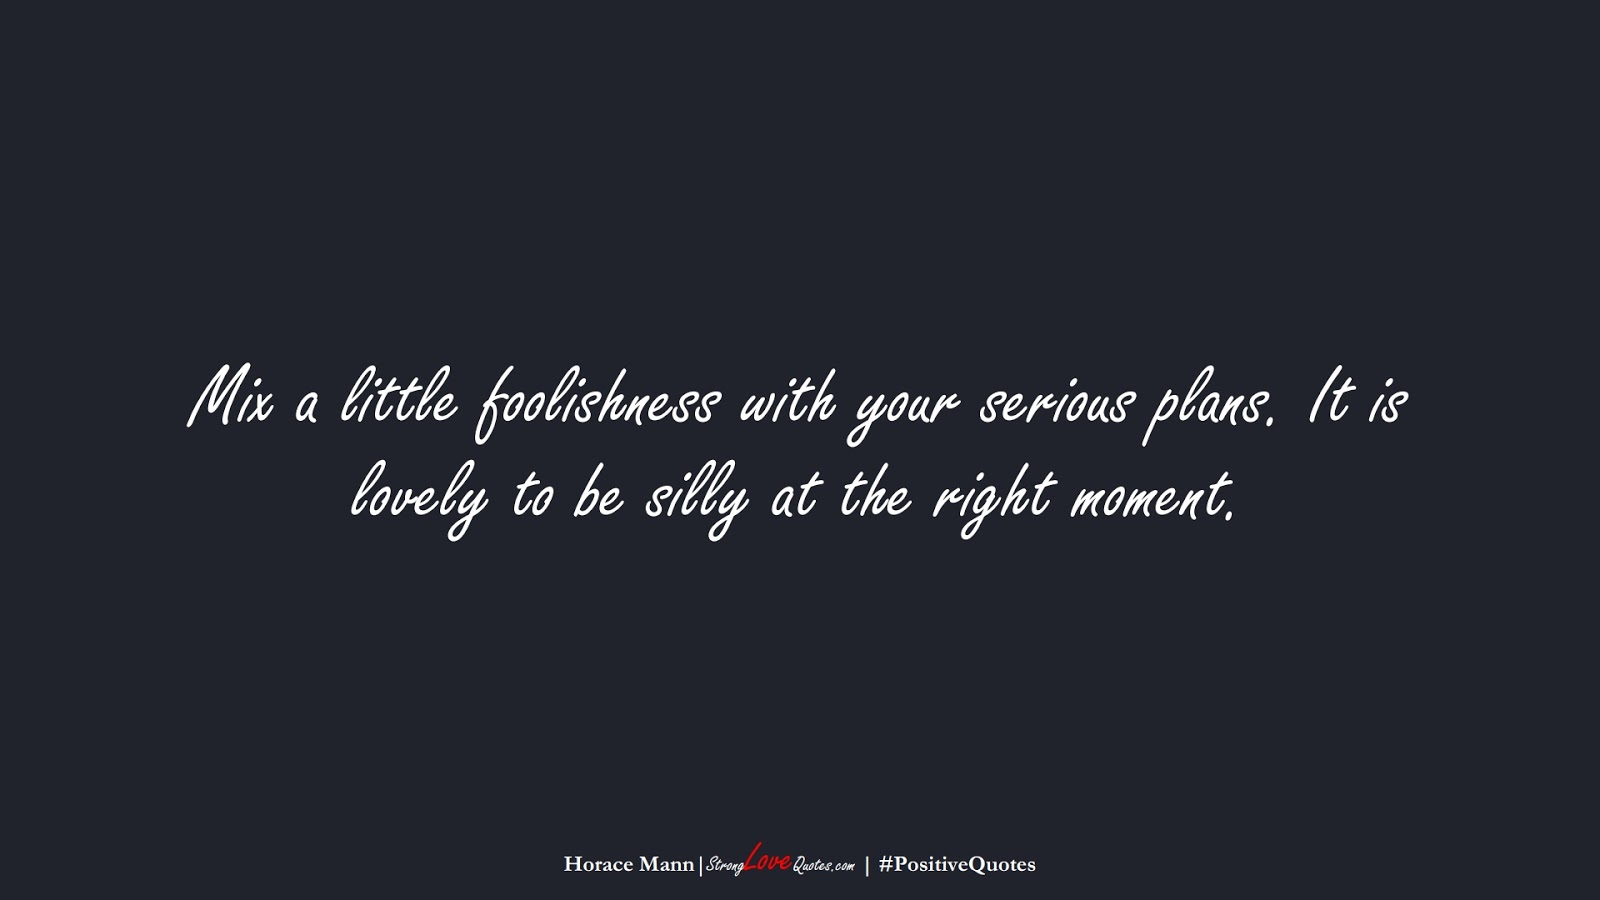 Mix a little foolishness with your serious plans. It is lovely to be silly at the right moment. (Horace Mann);  #PositiveQuotes